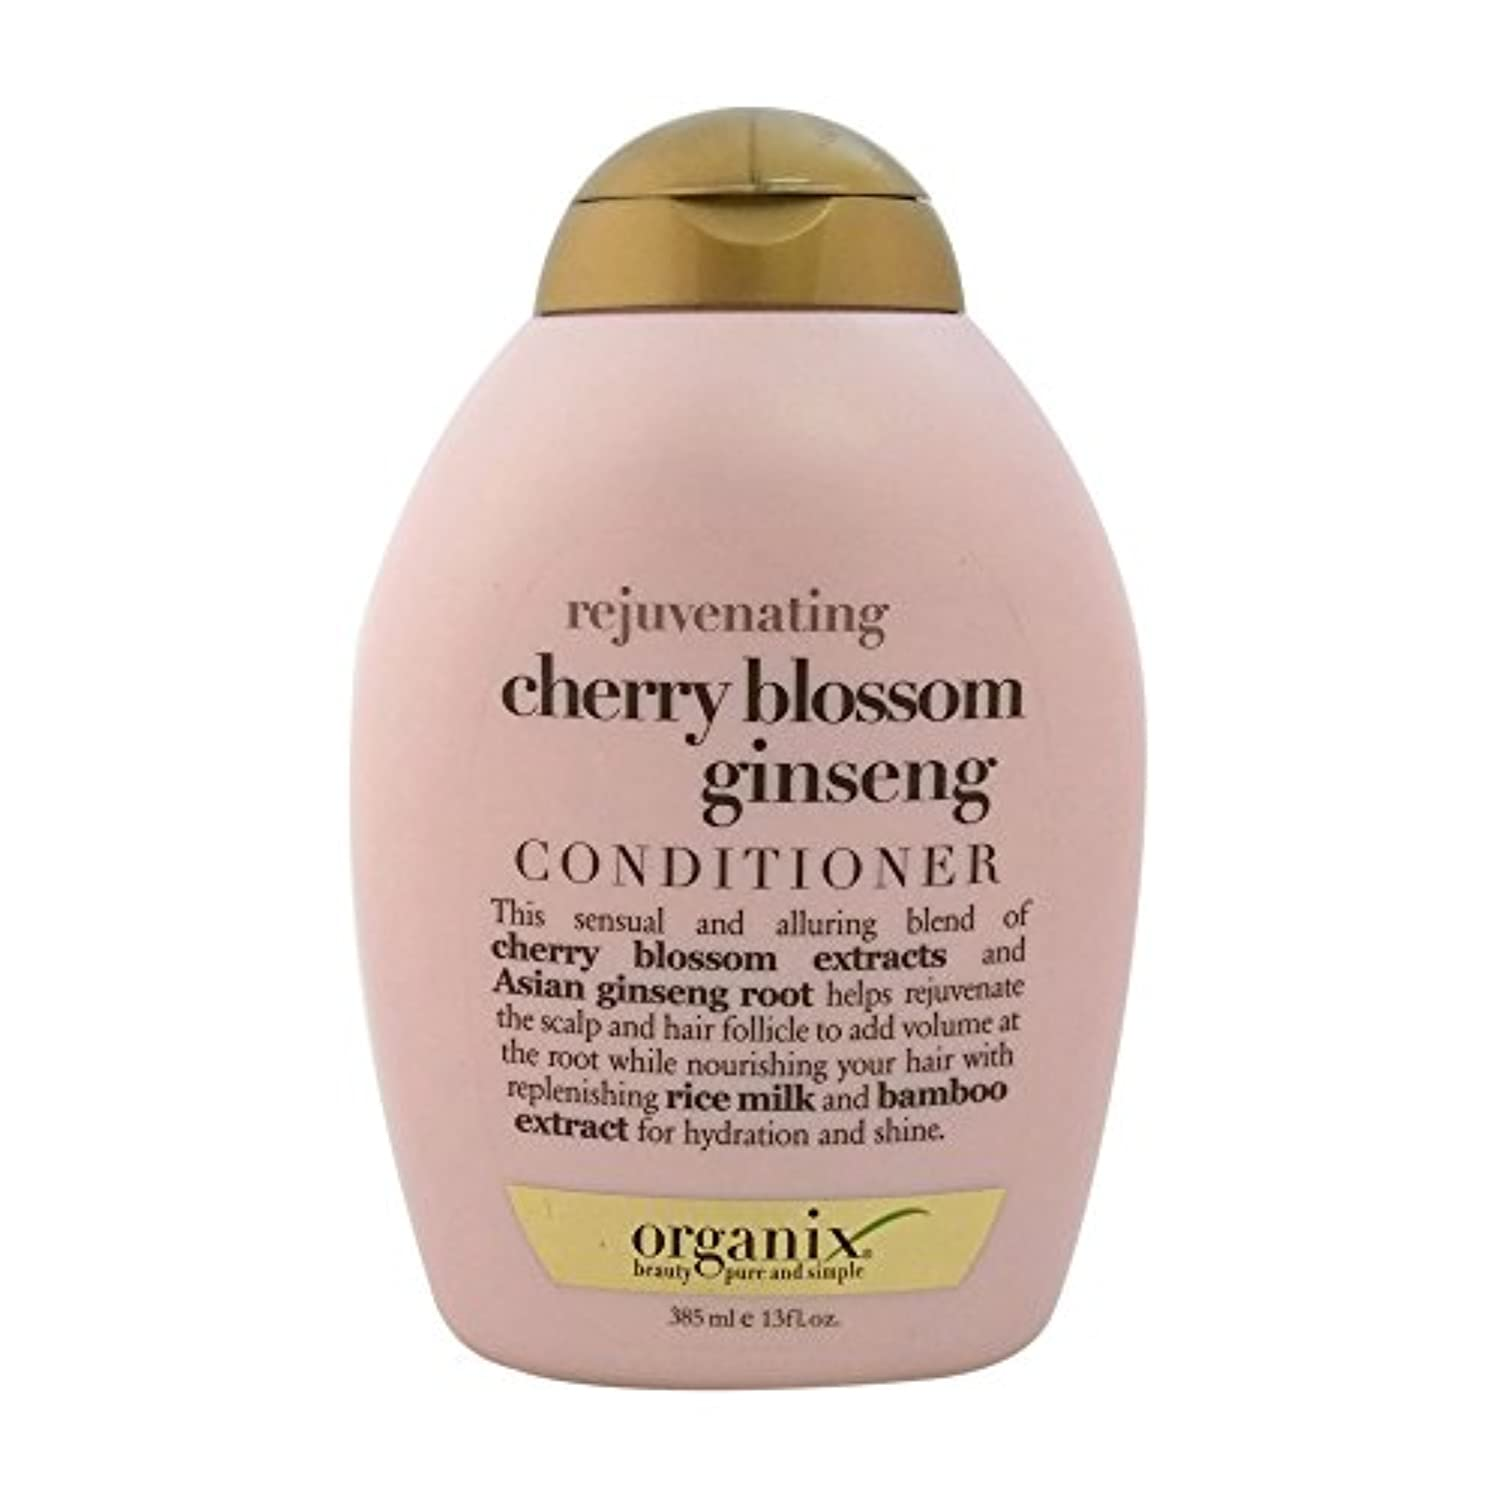 鼓舞する大きさグローブOrganix rejuvenating hair conditioner cherry blossom ginseng - 13 oz (並行輸入品)